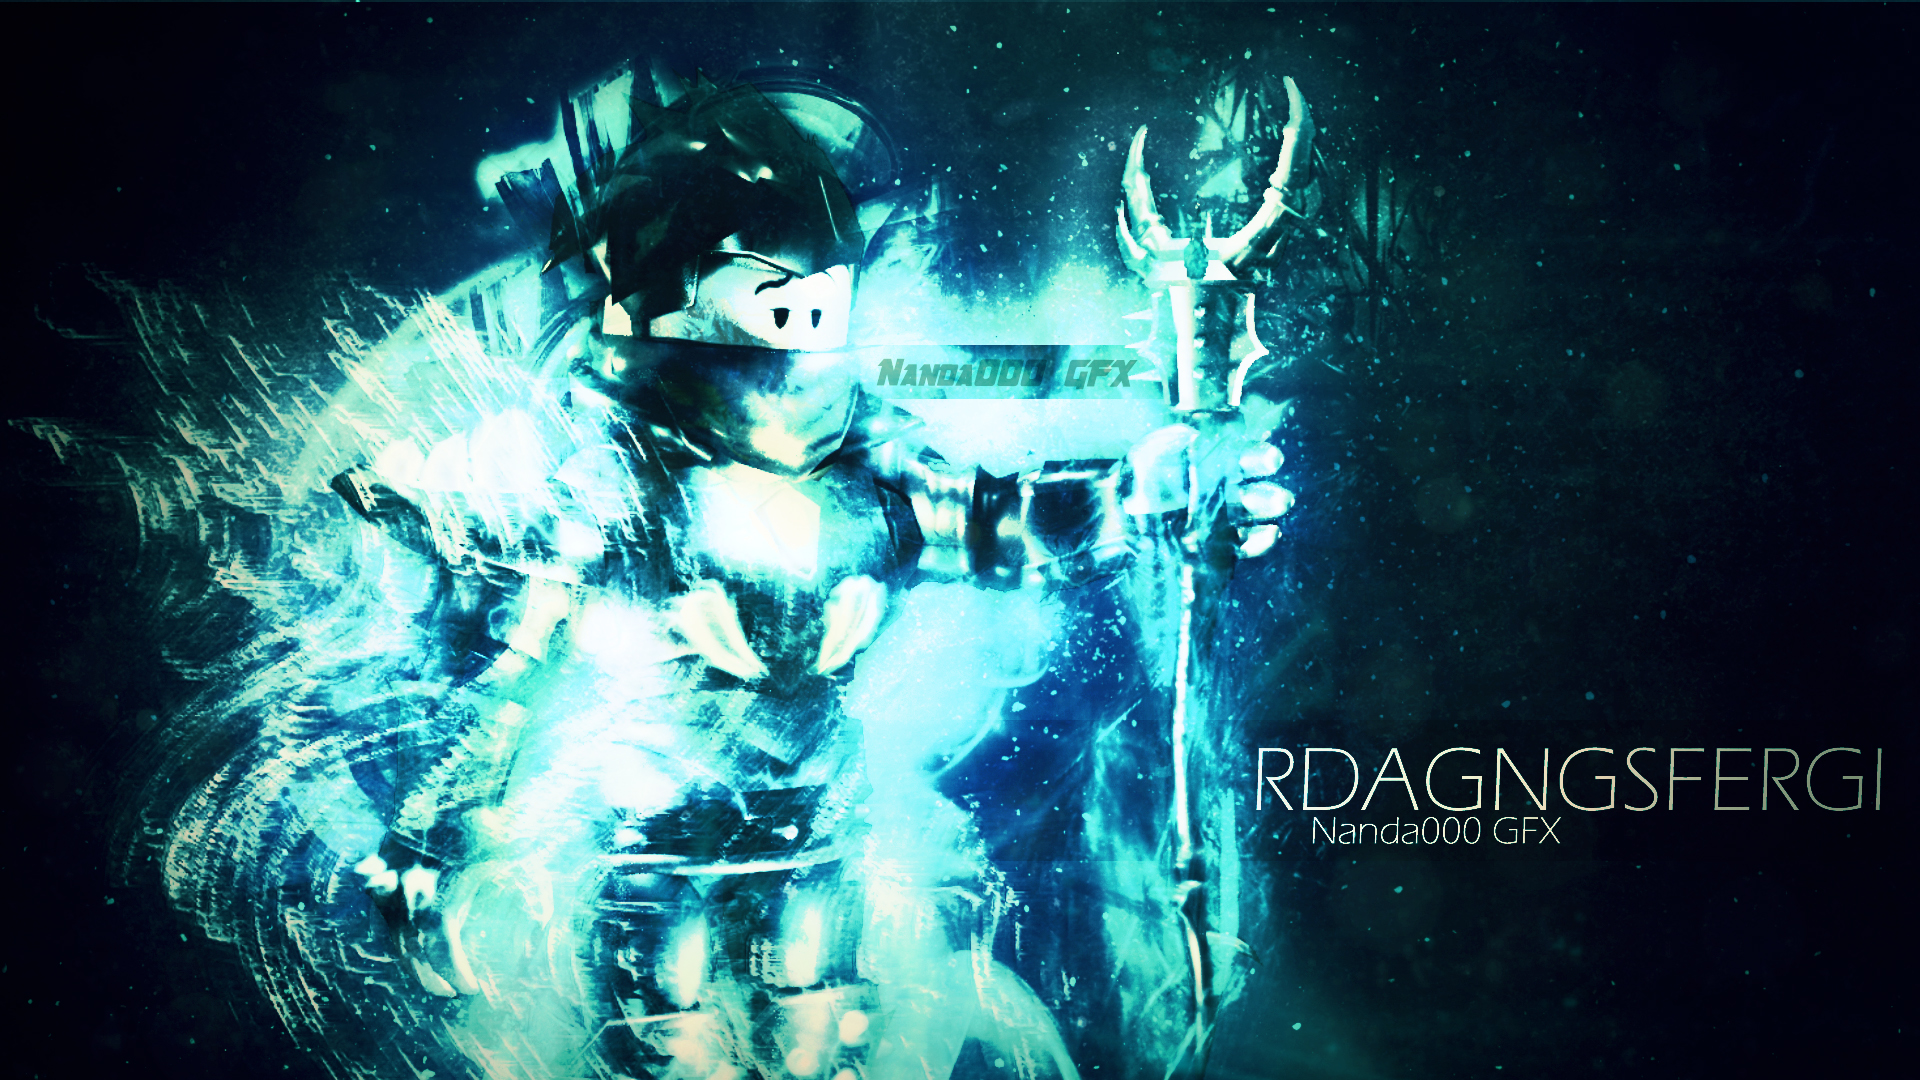 A Roblox GFX By Nanda000 For RDAGNGSFERGI NandaMC